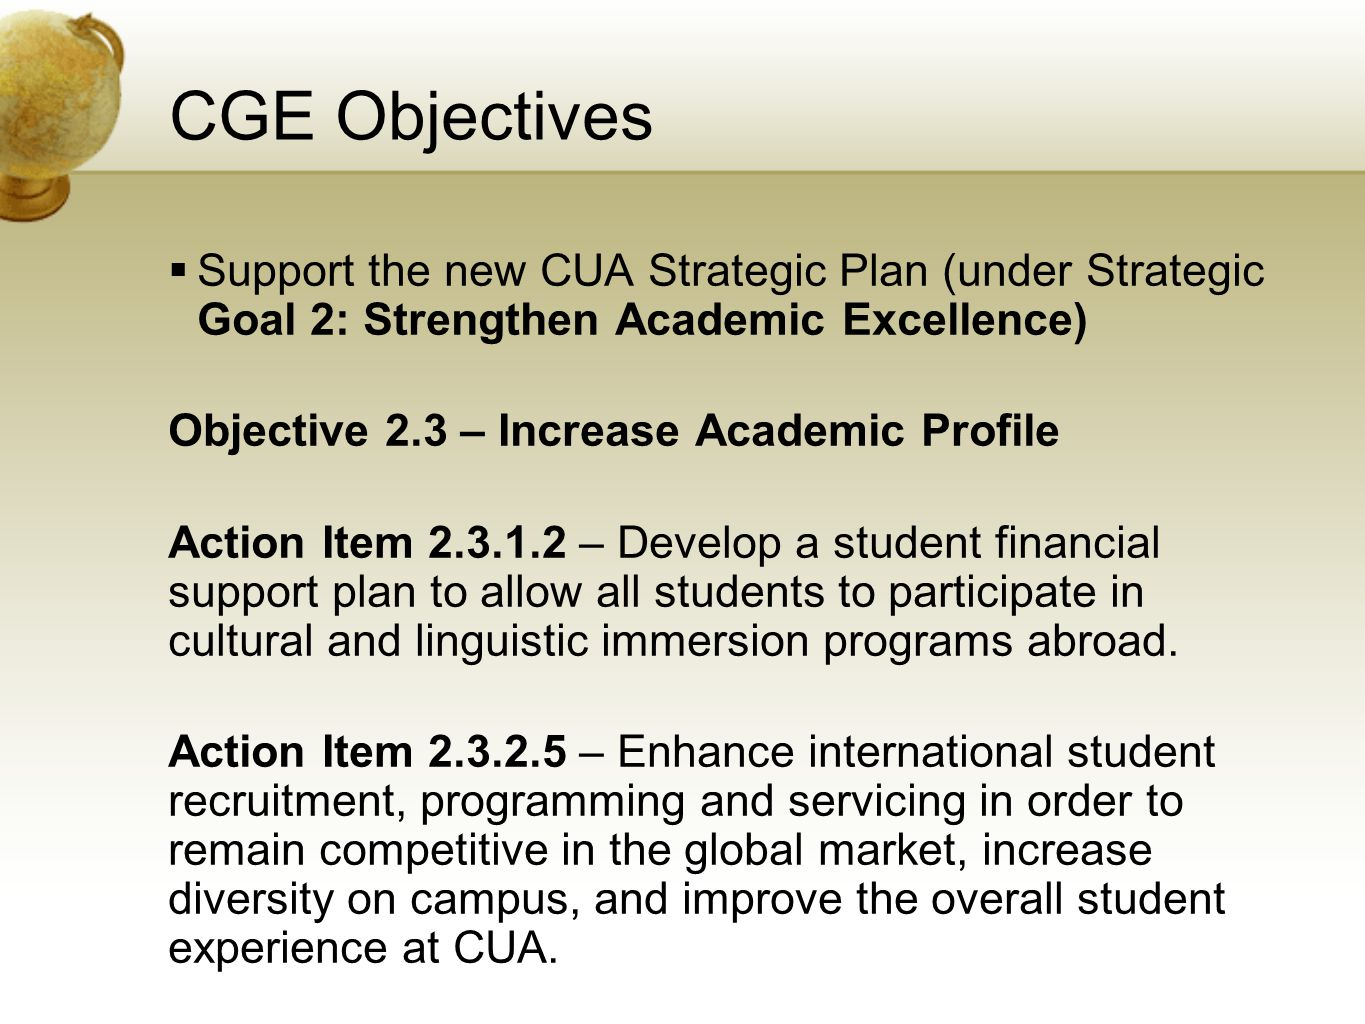 CGE Objectives Support the new CUA Strategic Plan (under Strategic Goal 2: Strengthen Academic Excellence) Objective 2.3 – Increase Academic Profile A